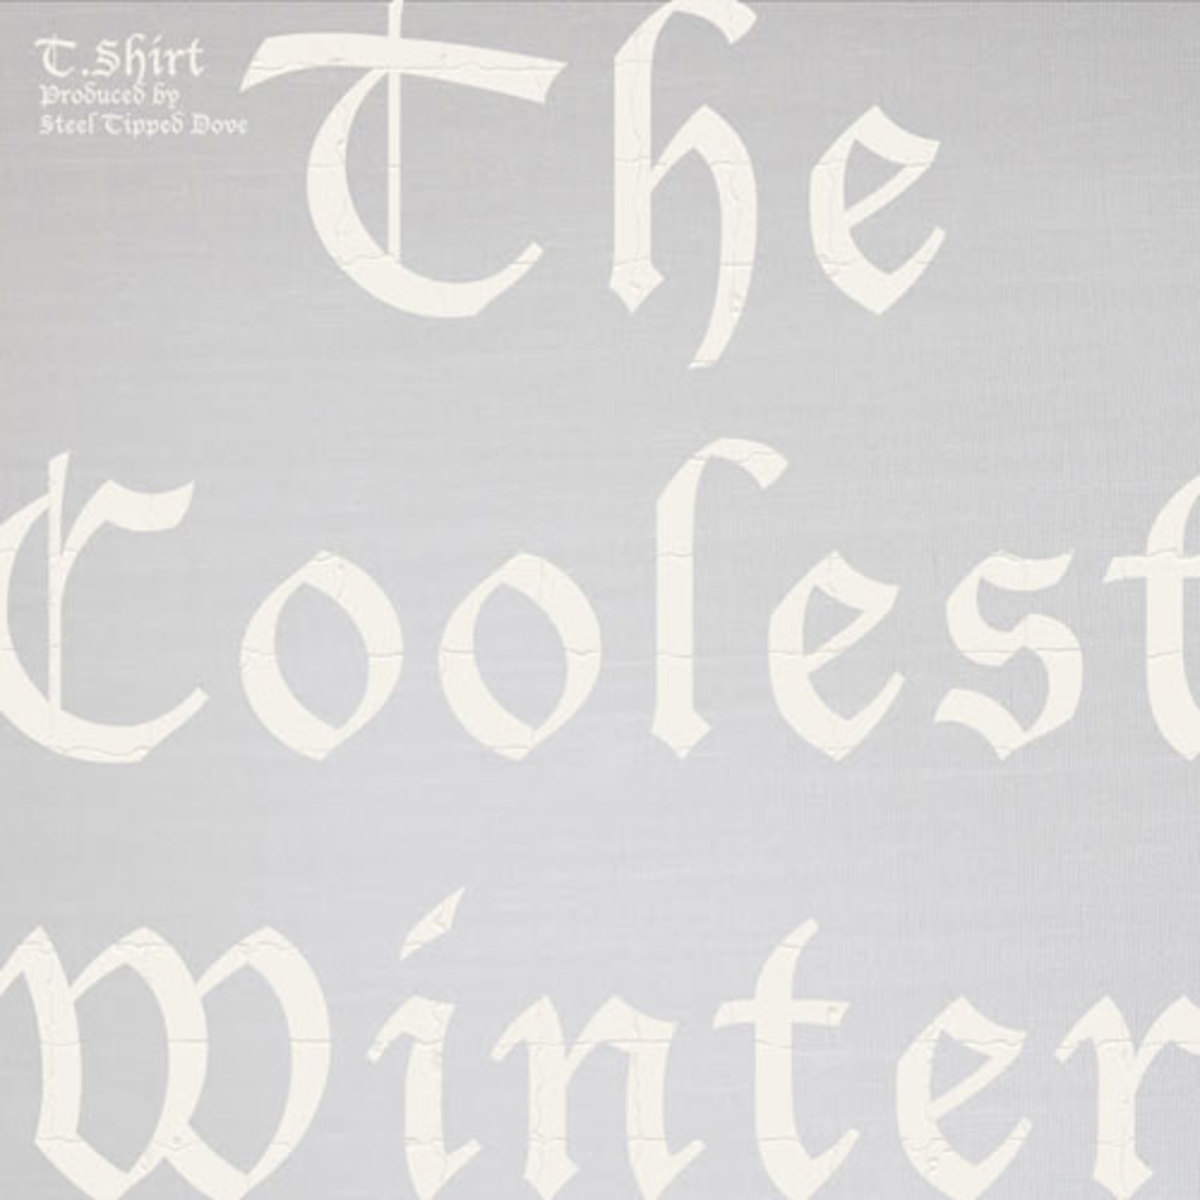 tshirt-thecoolestwinter.jpg